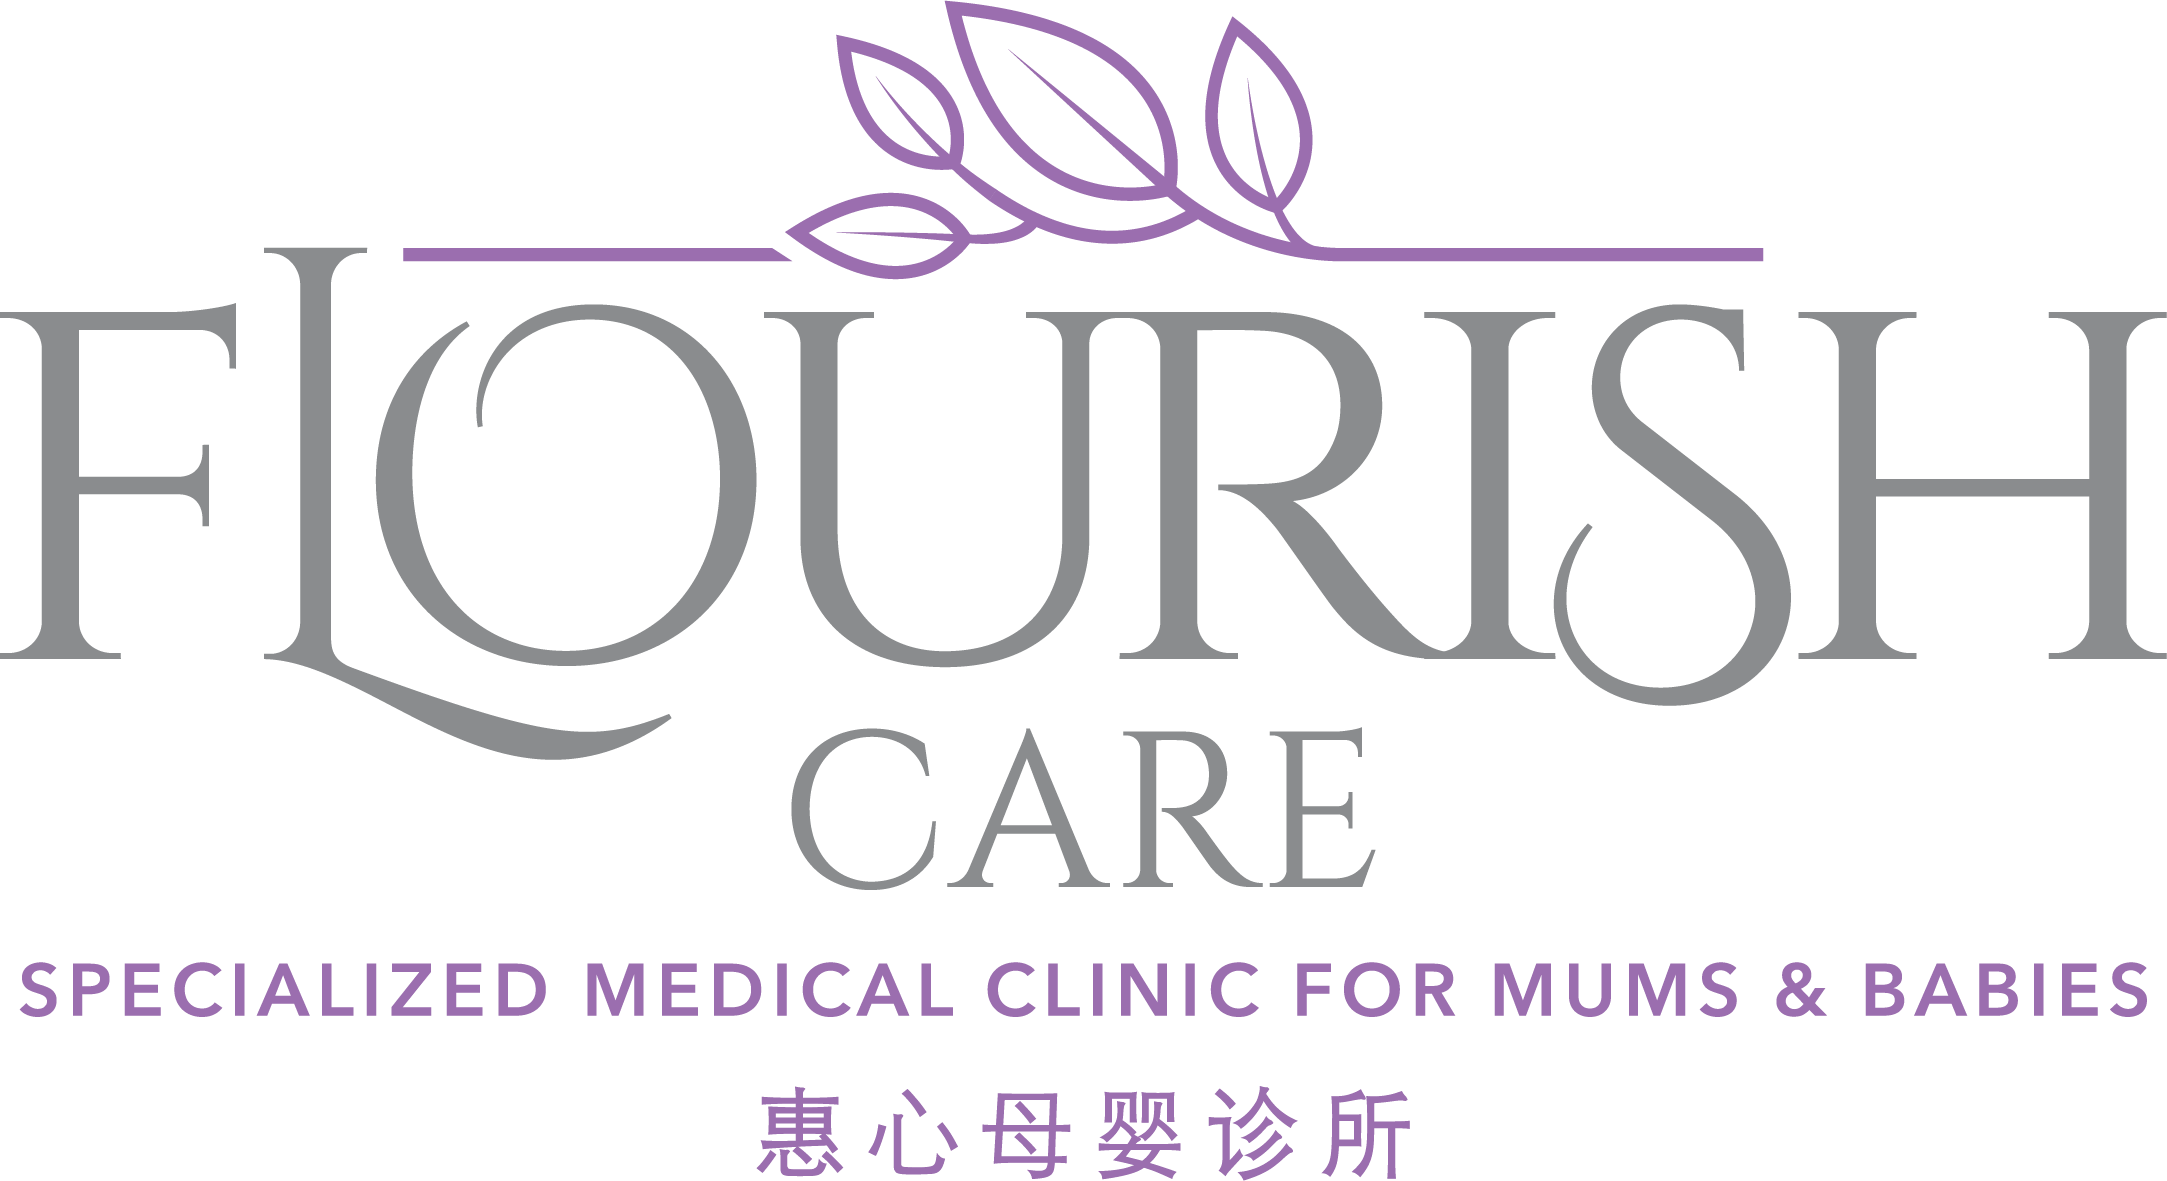 'Design a memorable logo for a specialised holistic clinic bringing happiness into new parenthood